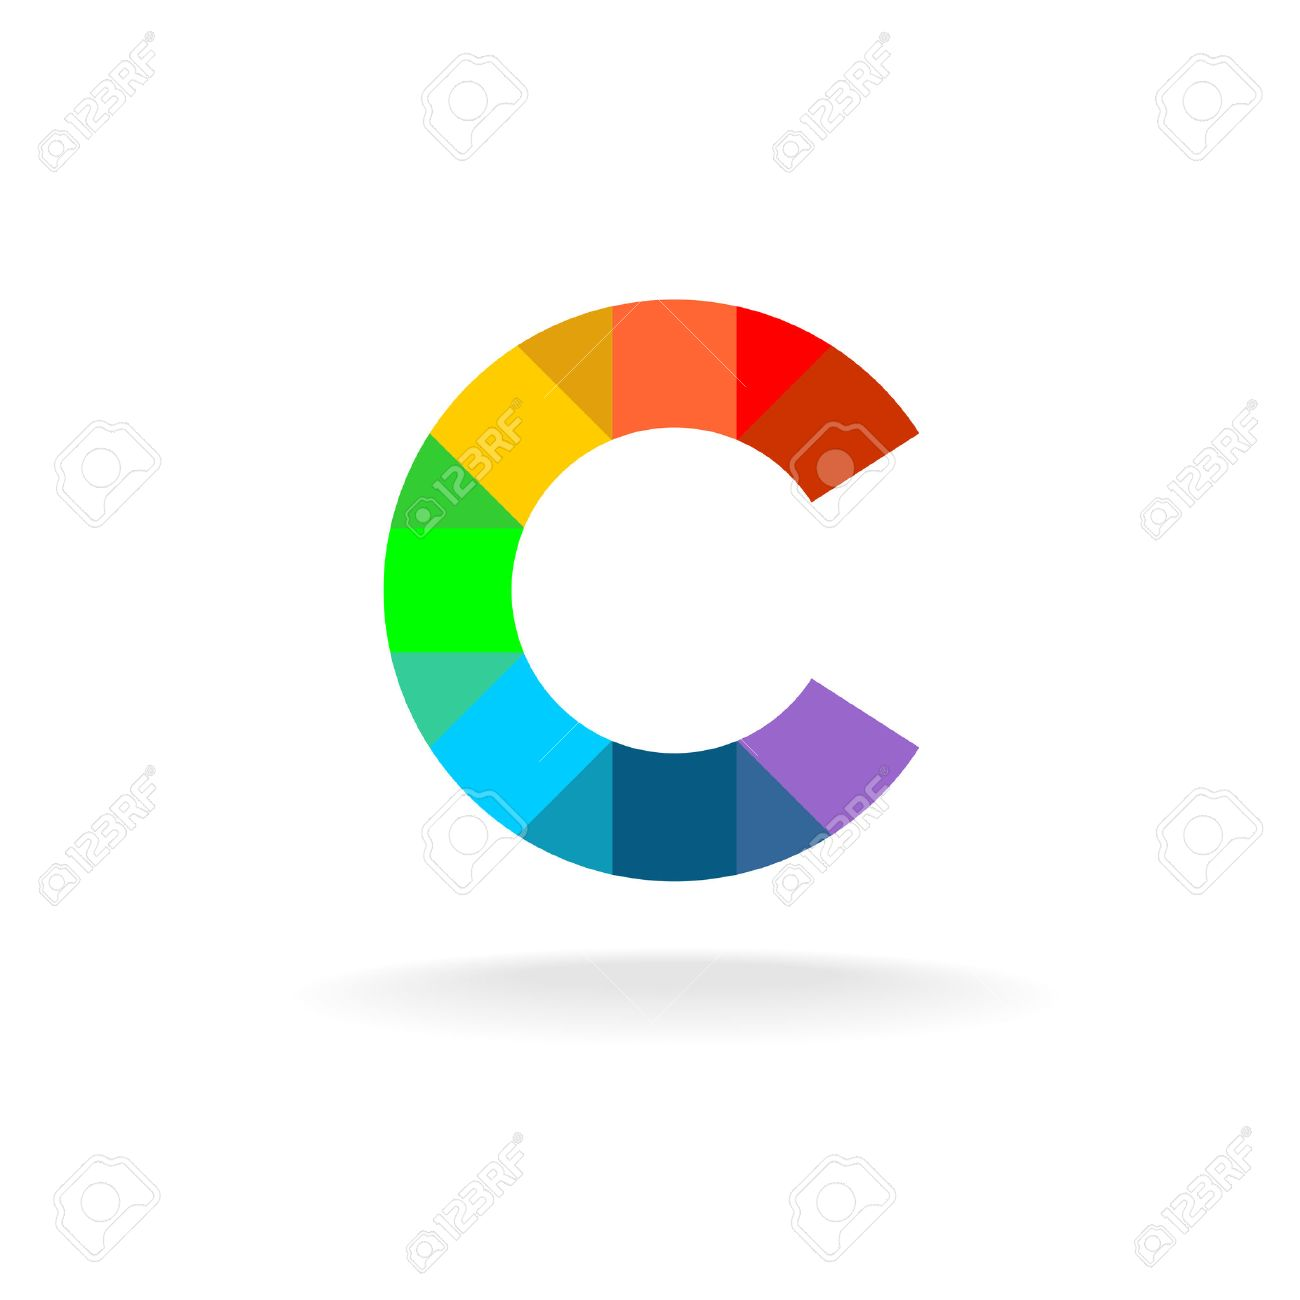 letter c colorful rainbow logo overlay particles style royalty